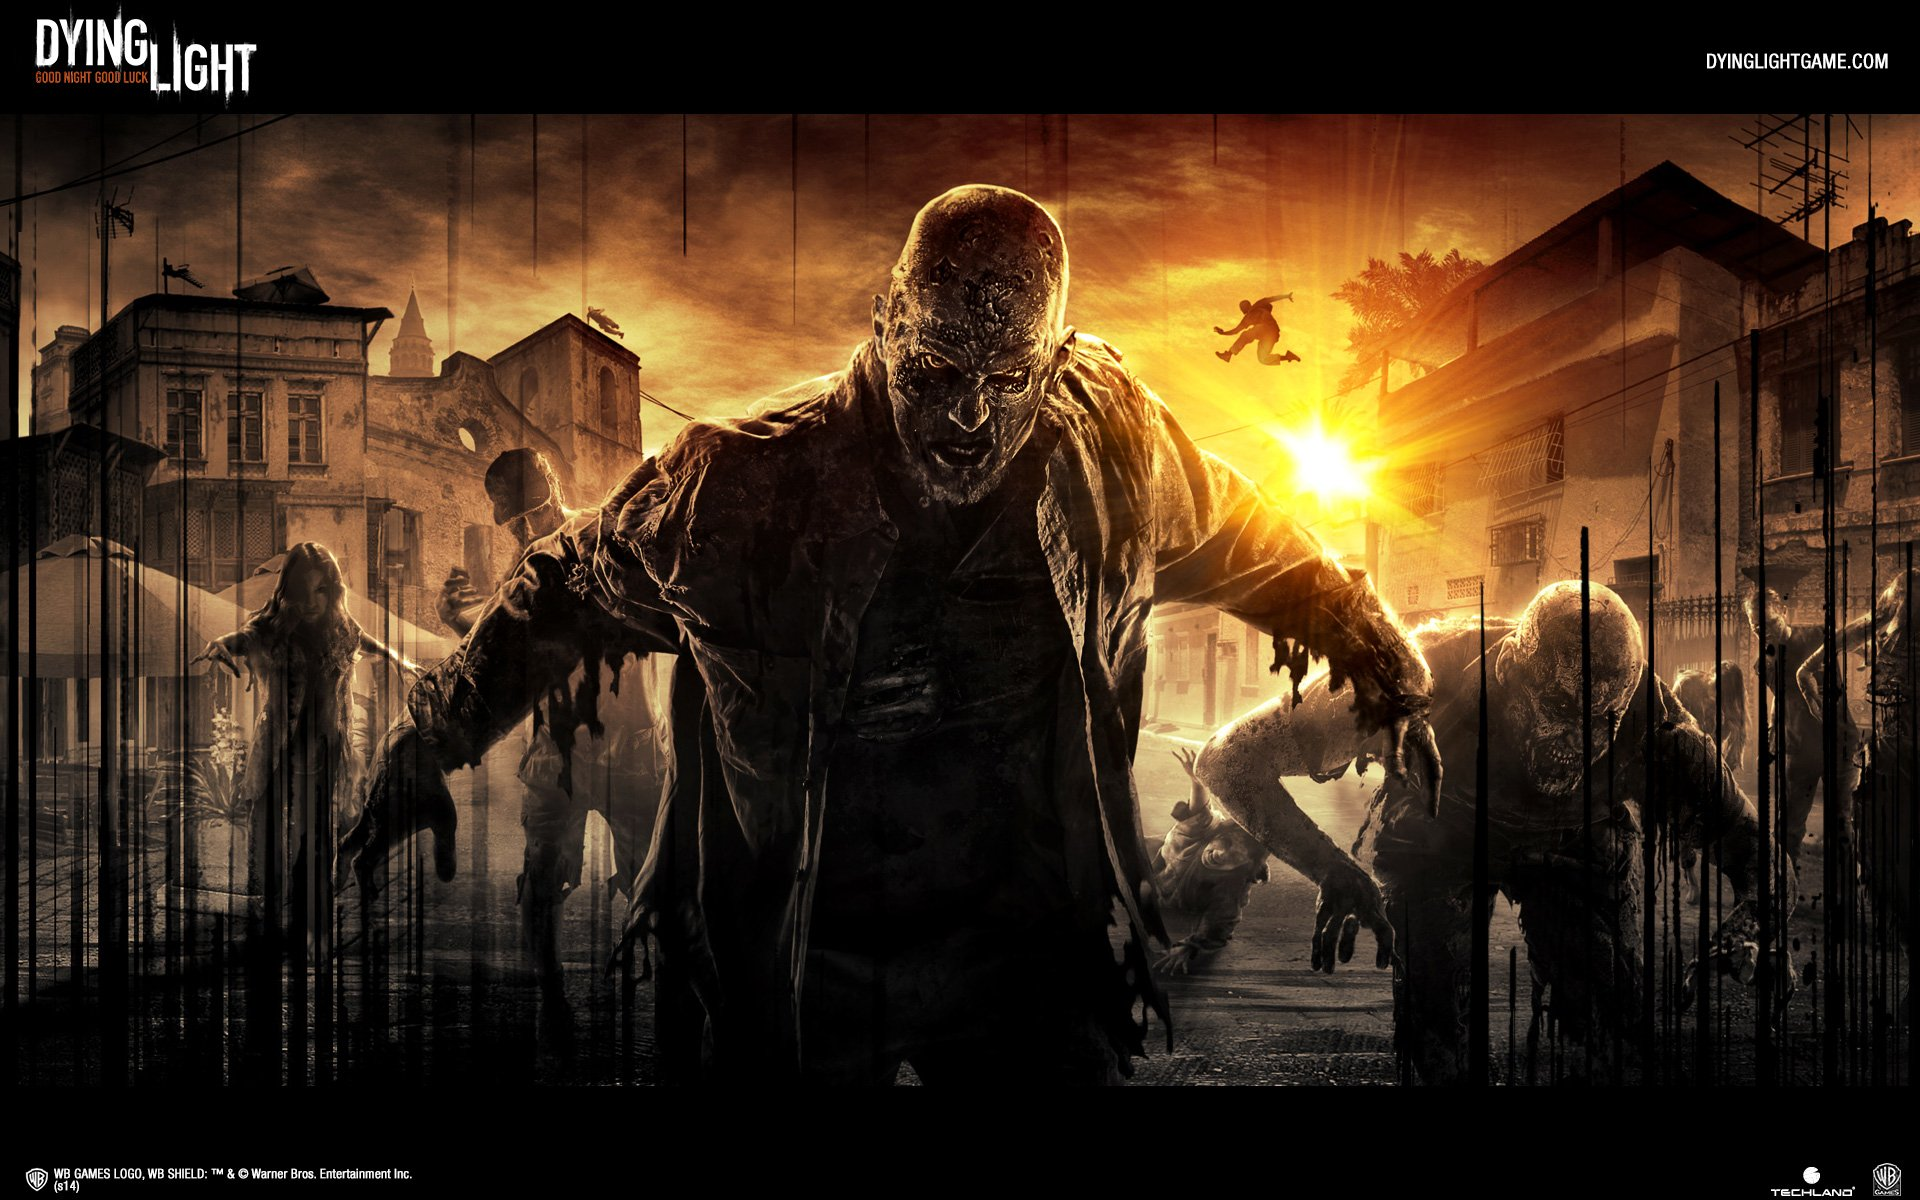 Video Game - Dying Light  Wallpaper